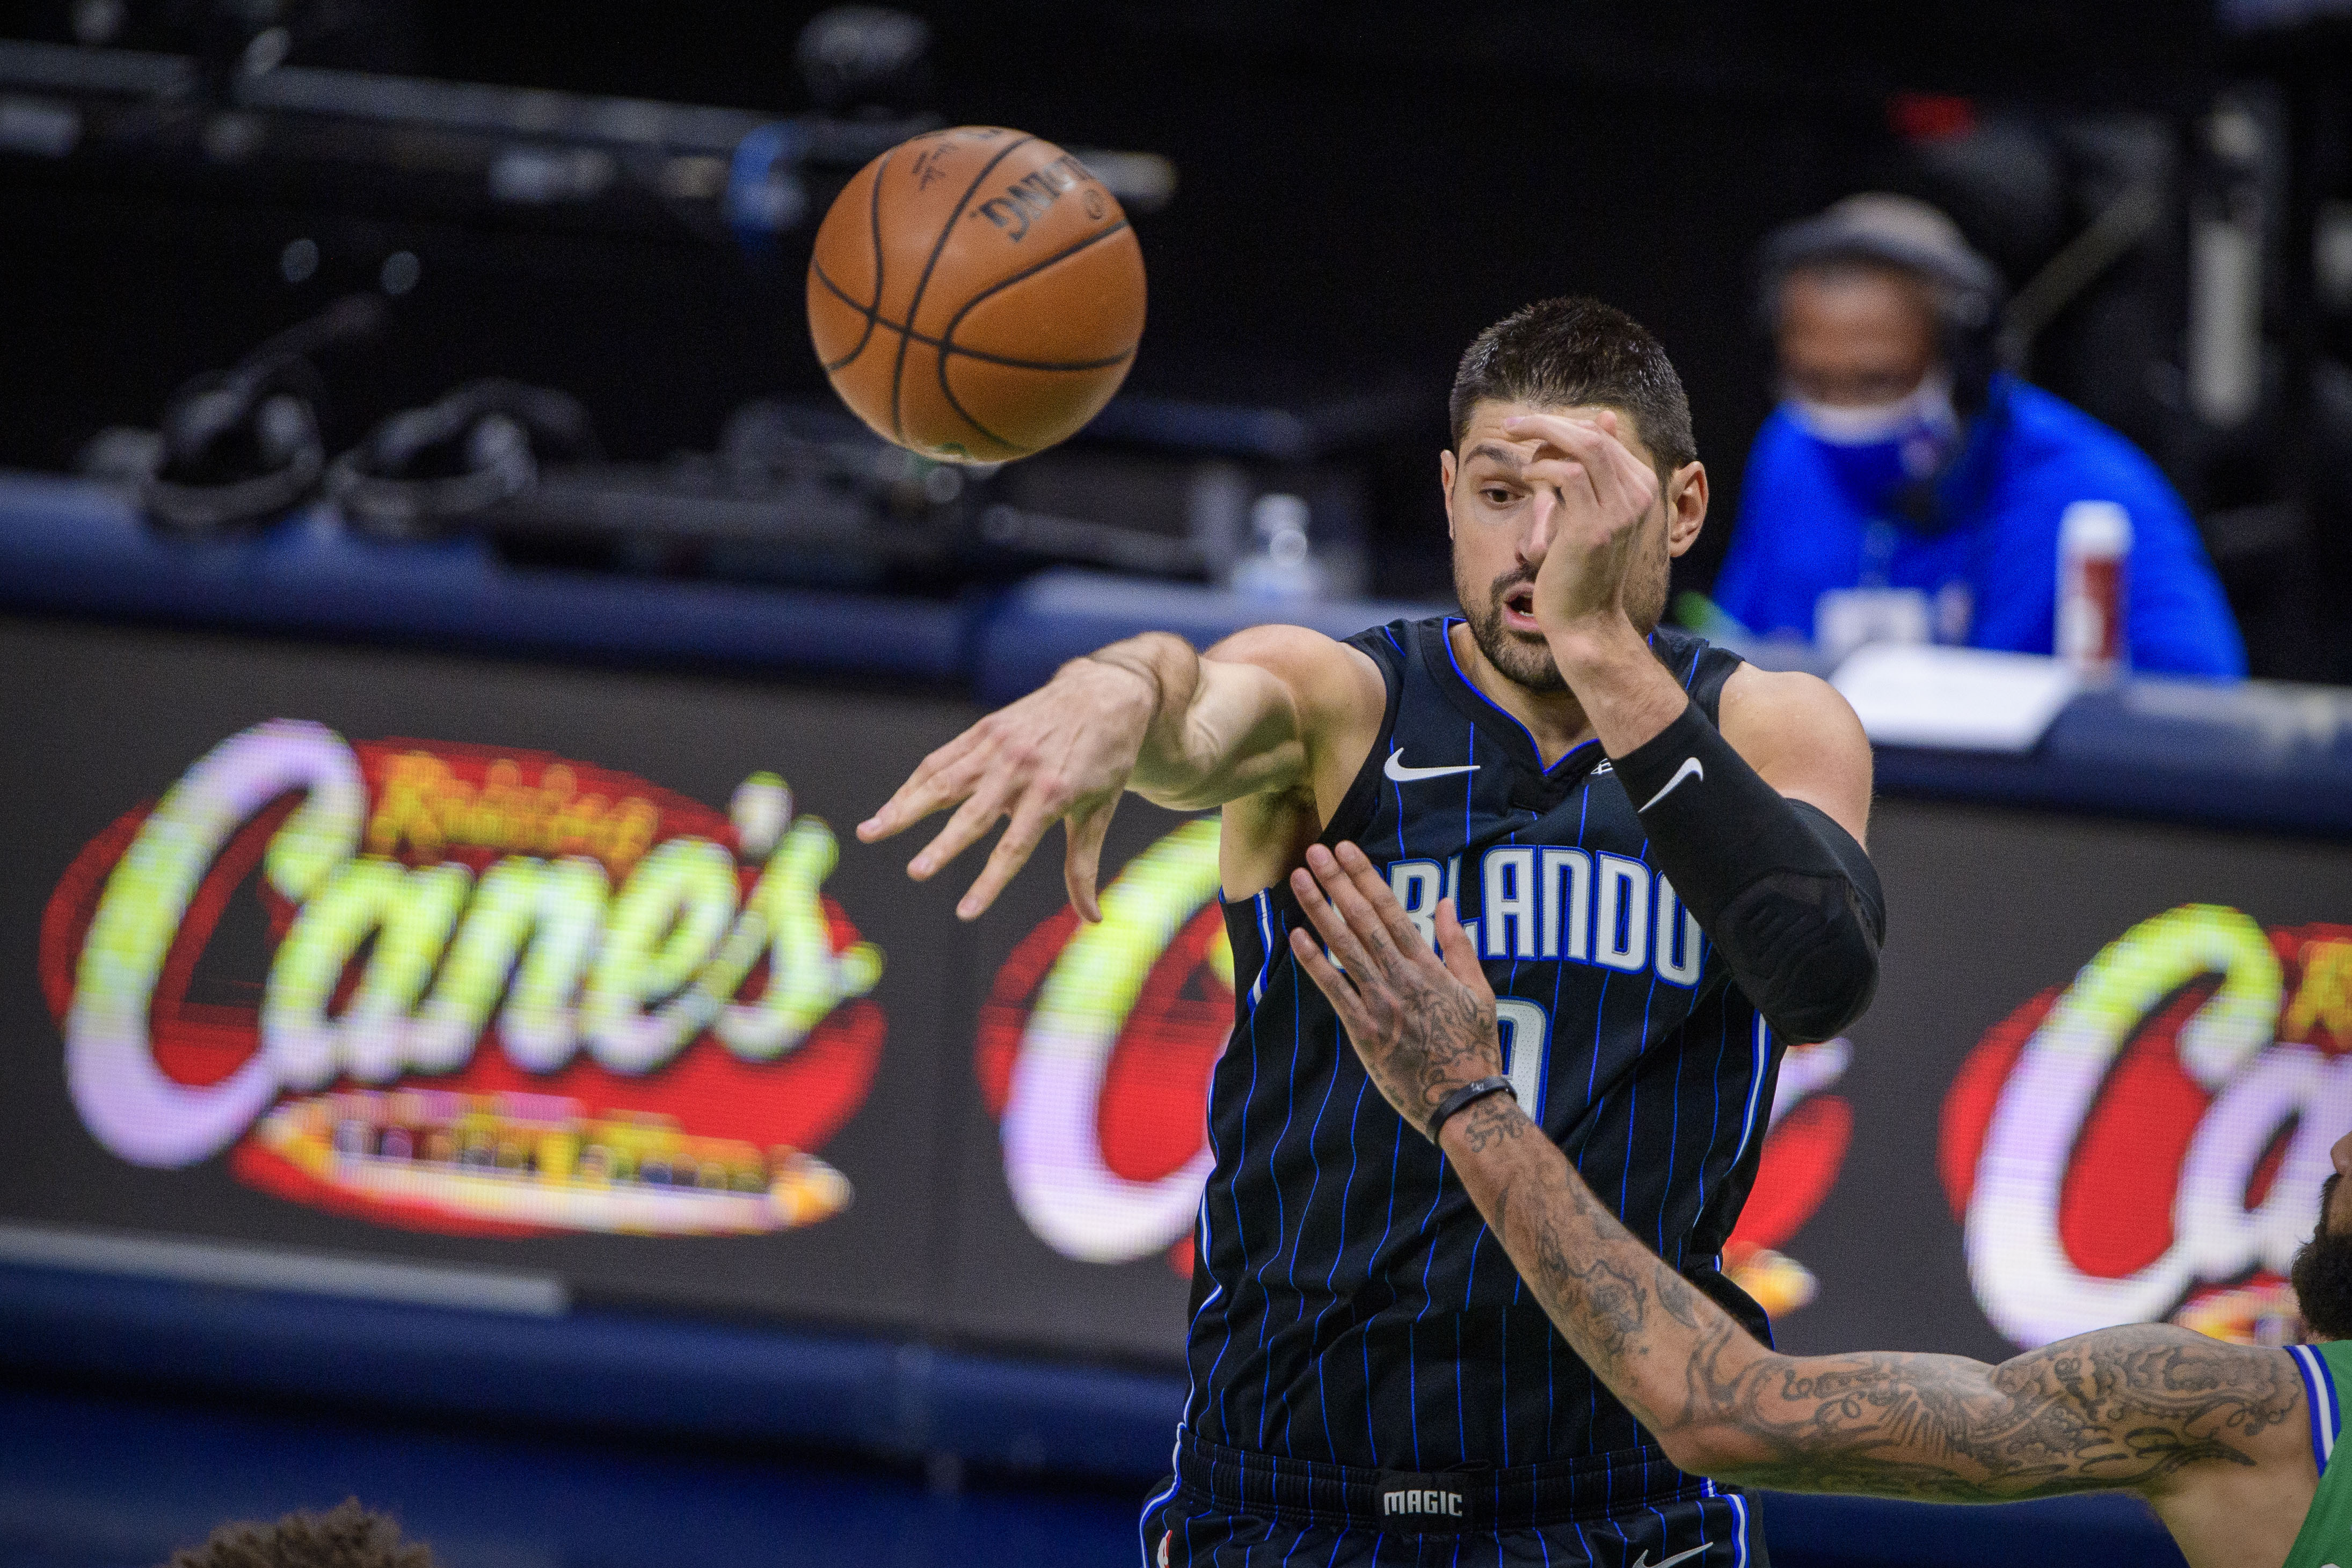 Jan 9, 2021; Dallas, Texas, USA; Orlando Magic center Nikola Vucevic (9) in action during the game between the Dallas Mavericks and the Orlando Magic at the American Airlines Center. Mandatory Credit: